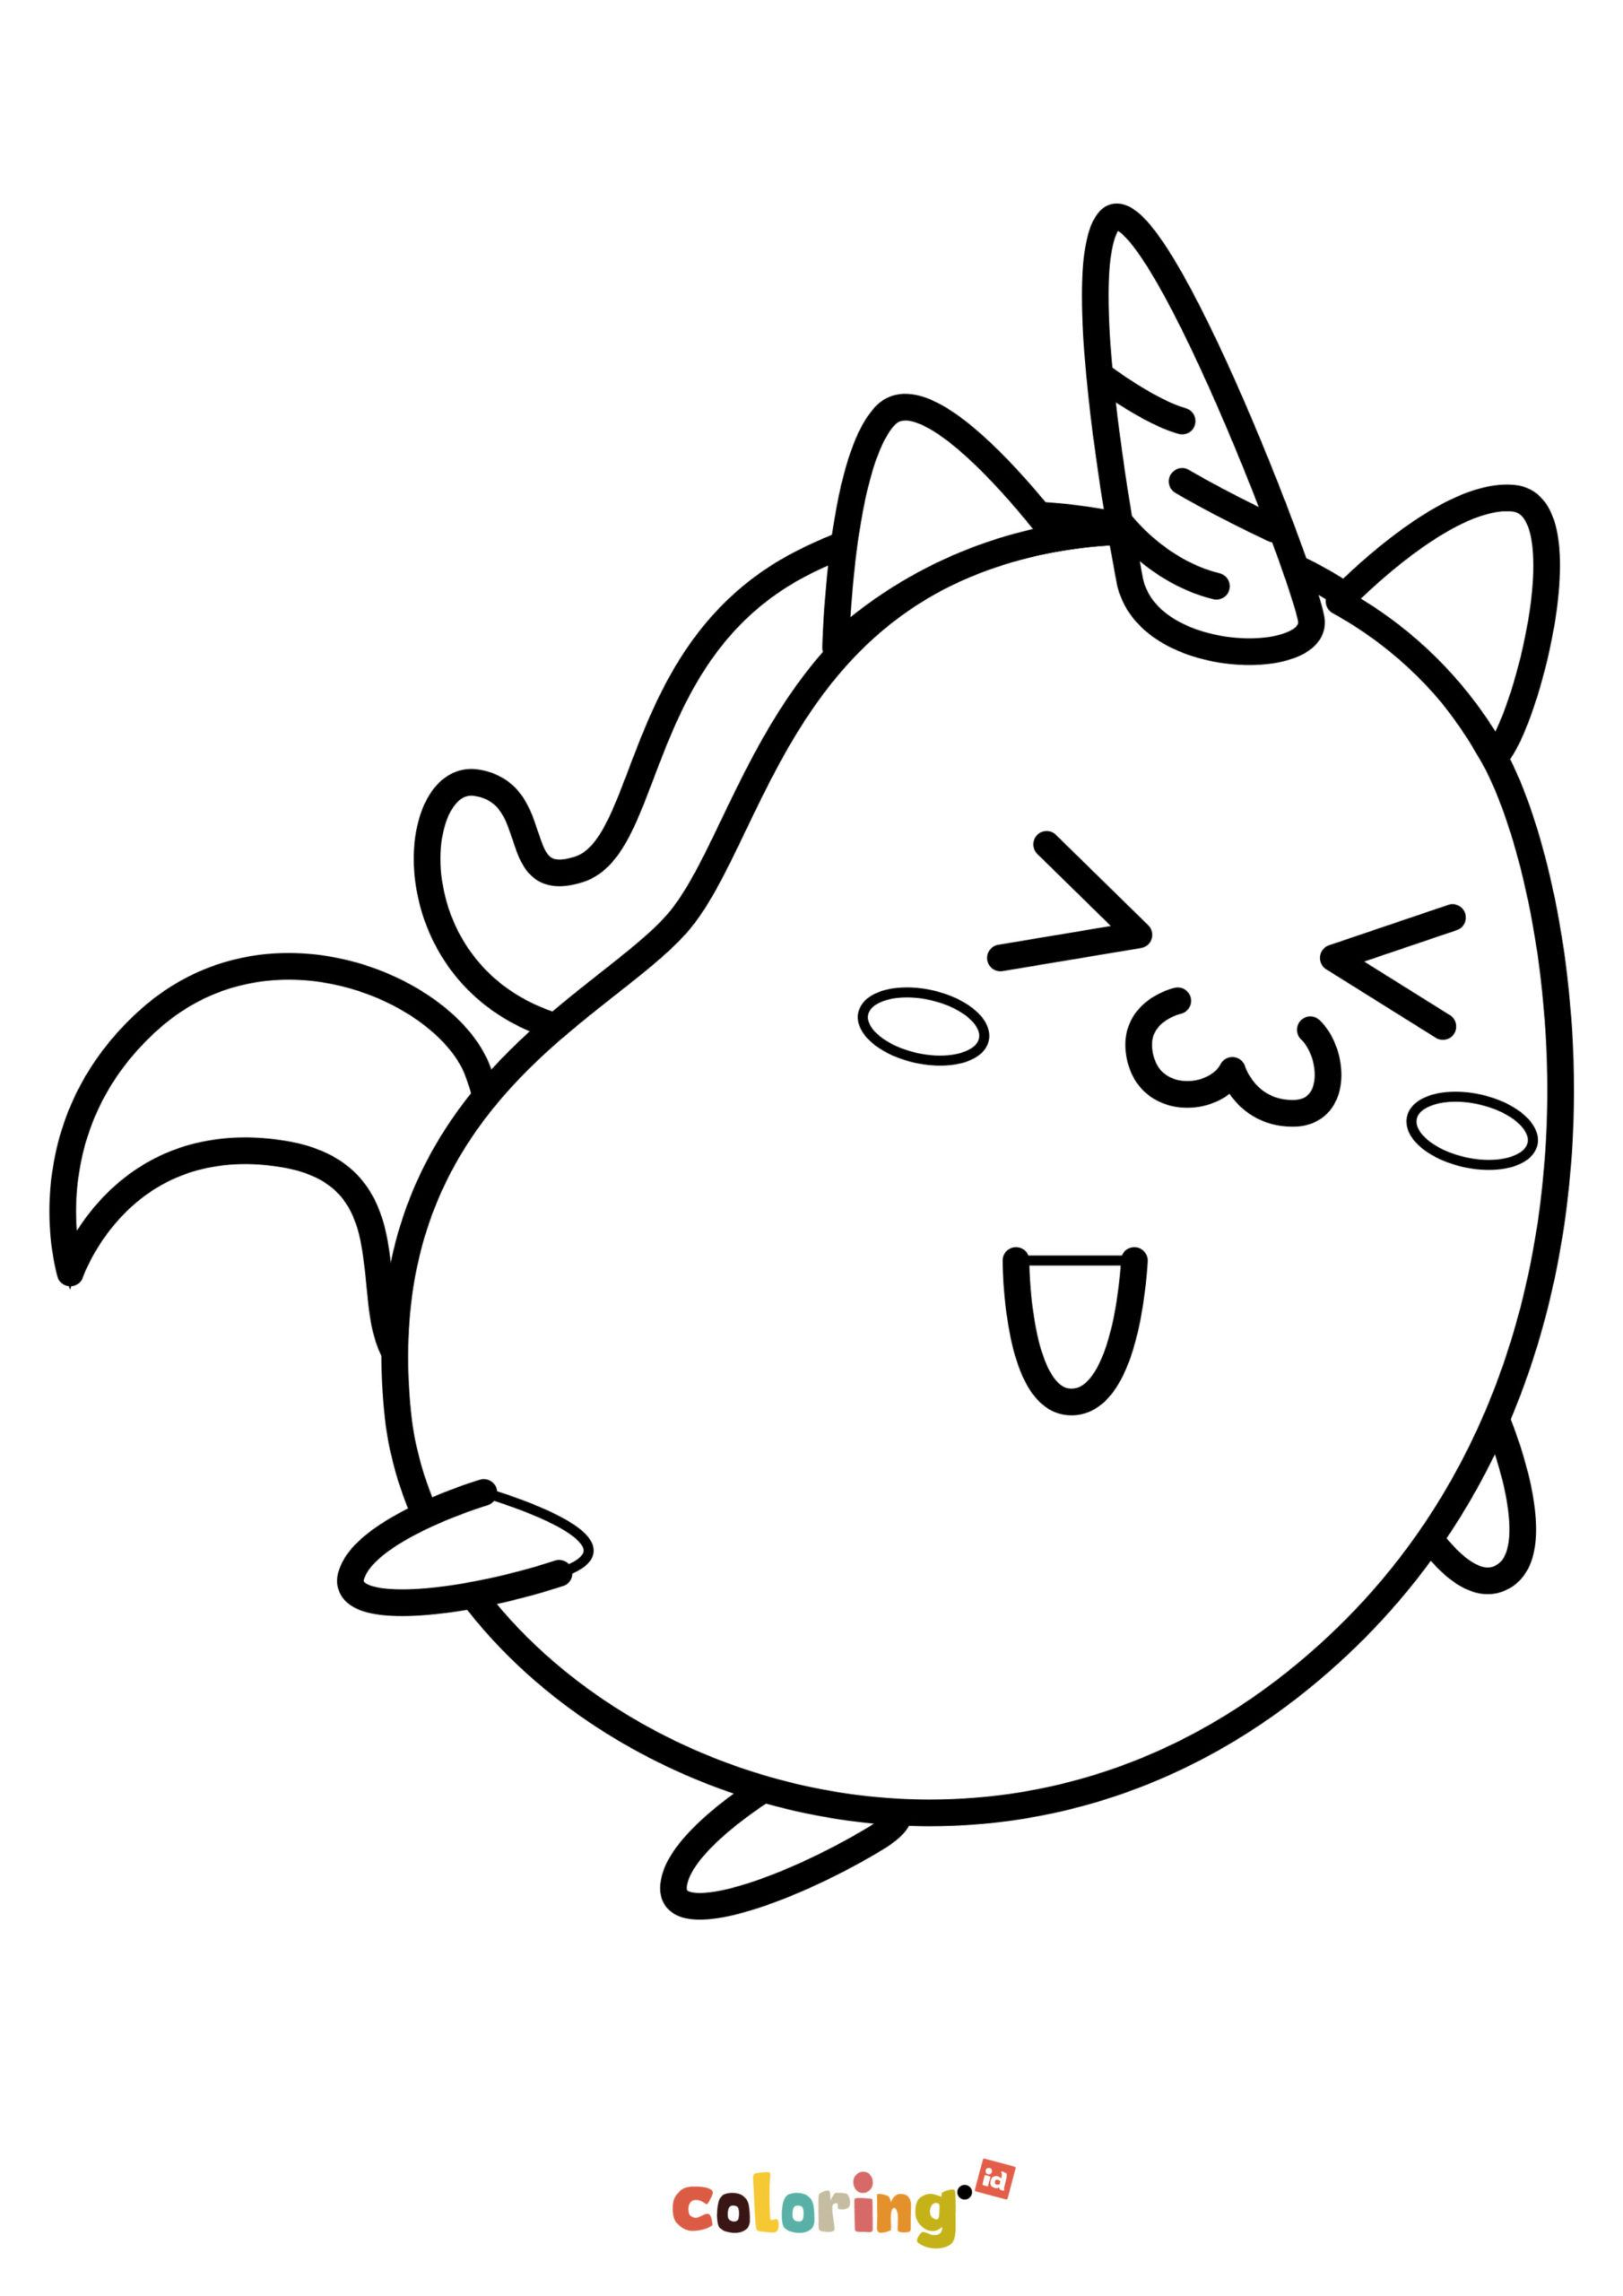 Cute Unicorn Kawaii Coloring Page Hey Kids Lets Print Unicorn Coloring Pages For Preschool Kindergarte In 2020 Unicorn Coloring Pages Coloring Pages Coloring Books